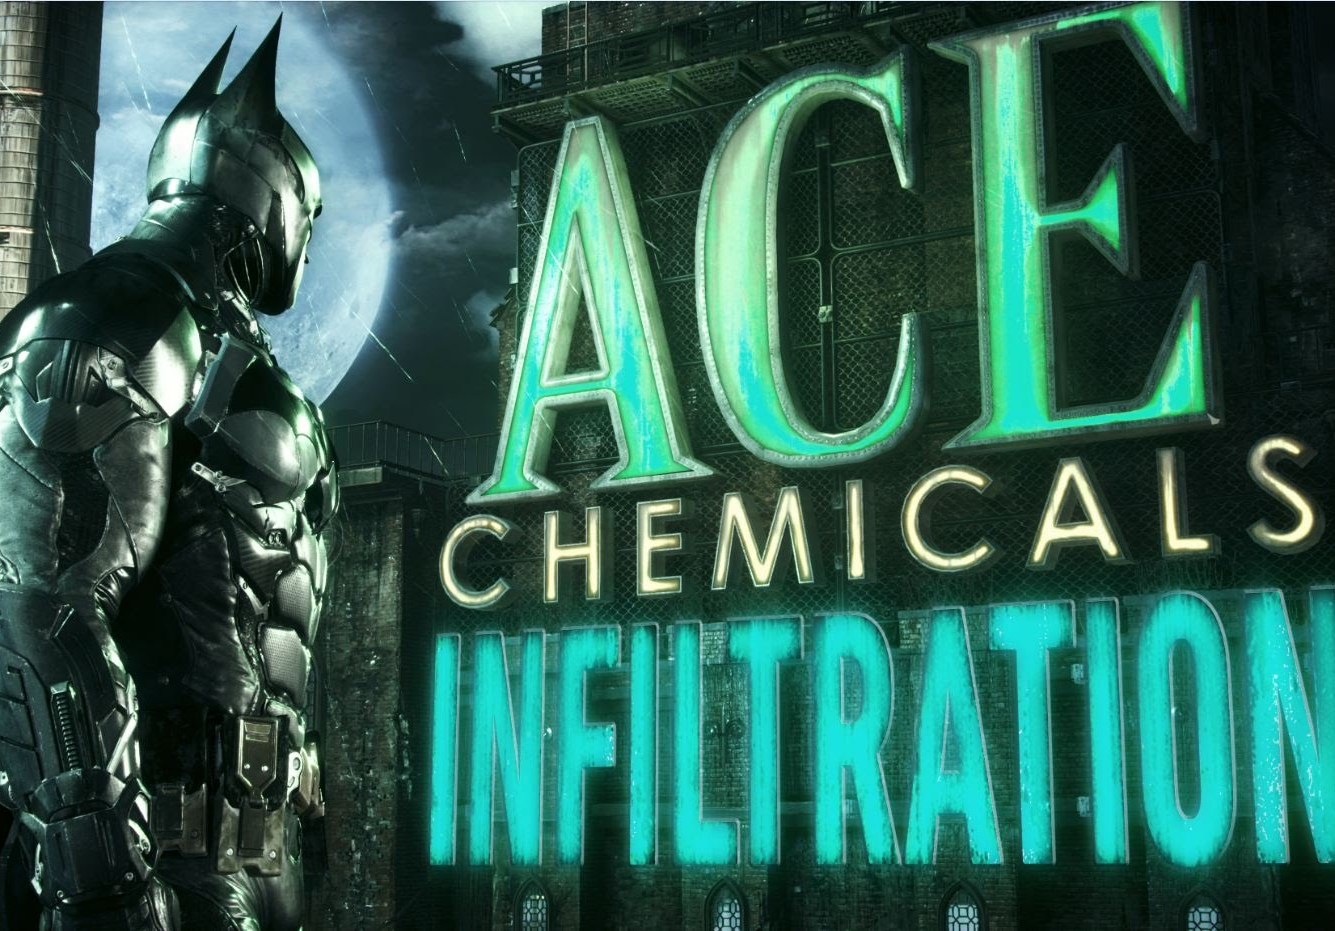 Batman: Arkham Knight - Ace Chemicals Infiltration Trailer: Part 1